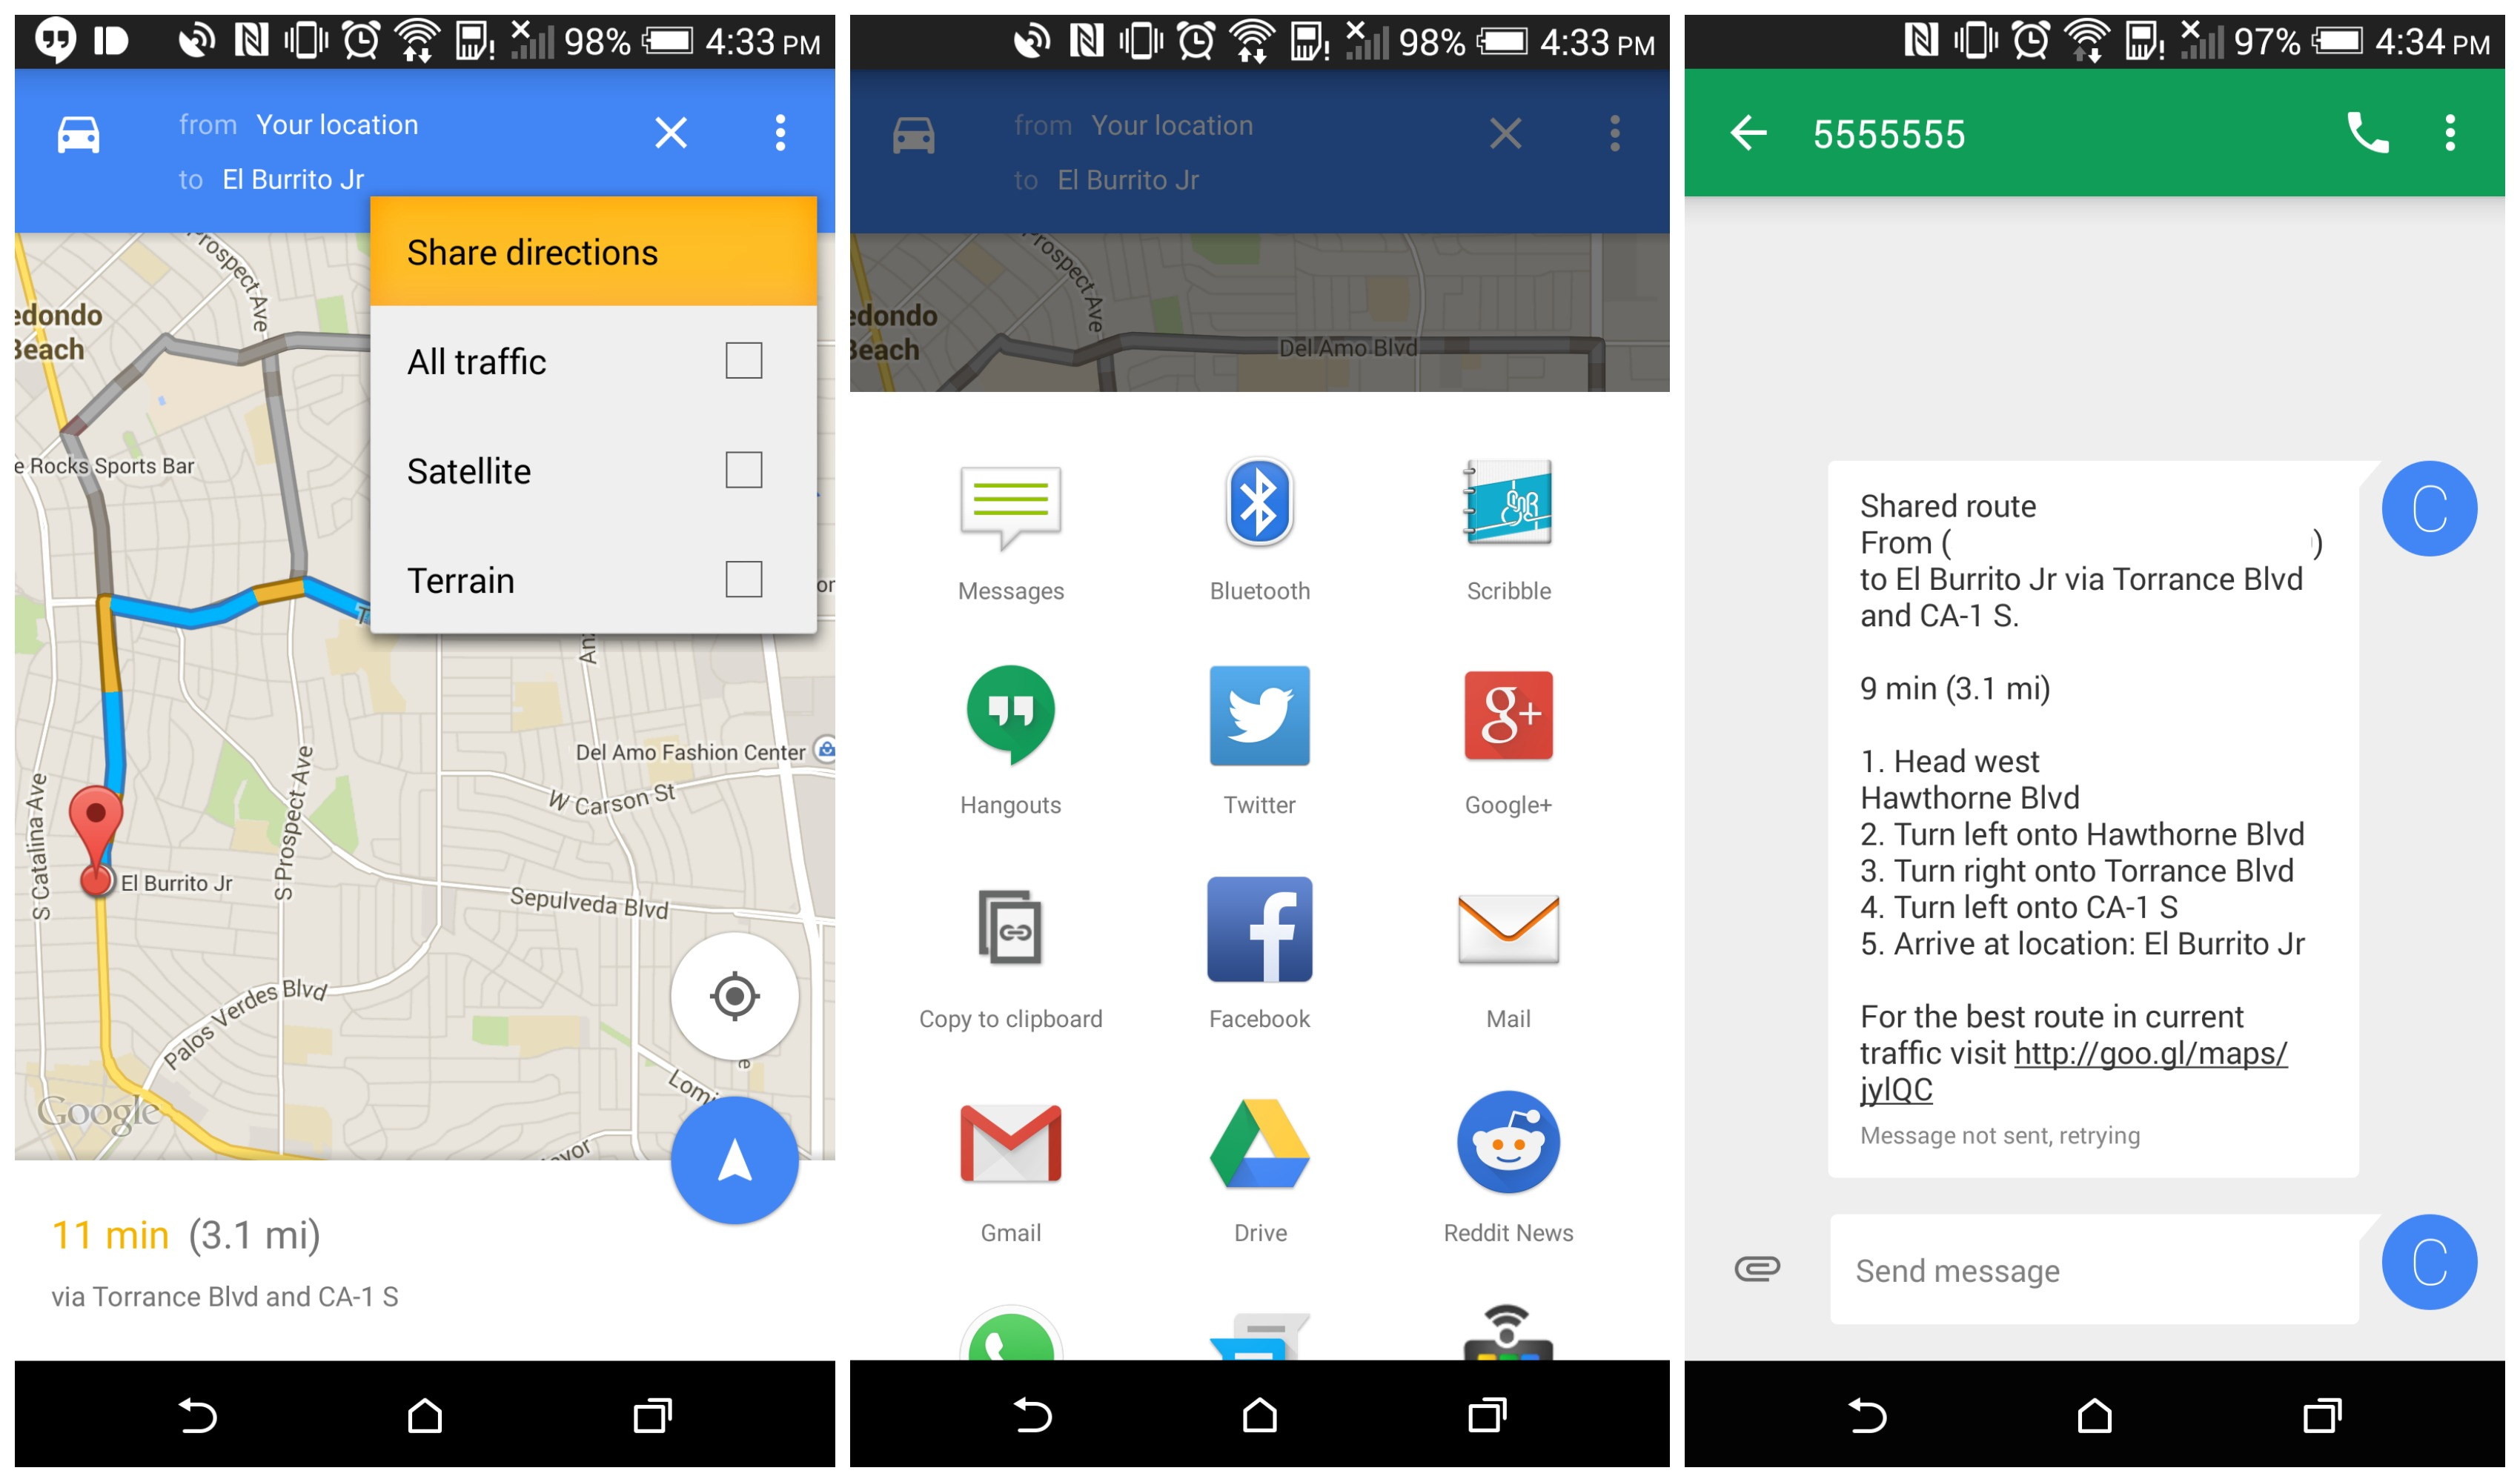 DOWNLOAD: Google Maps 9.3 with sharable directions on